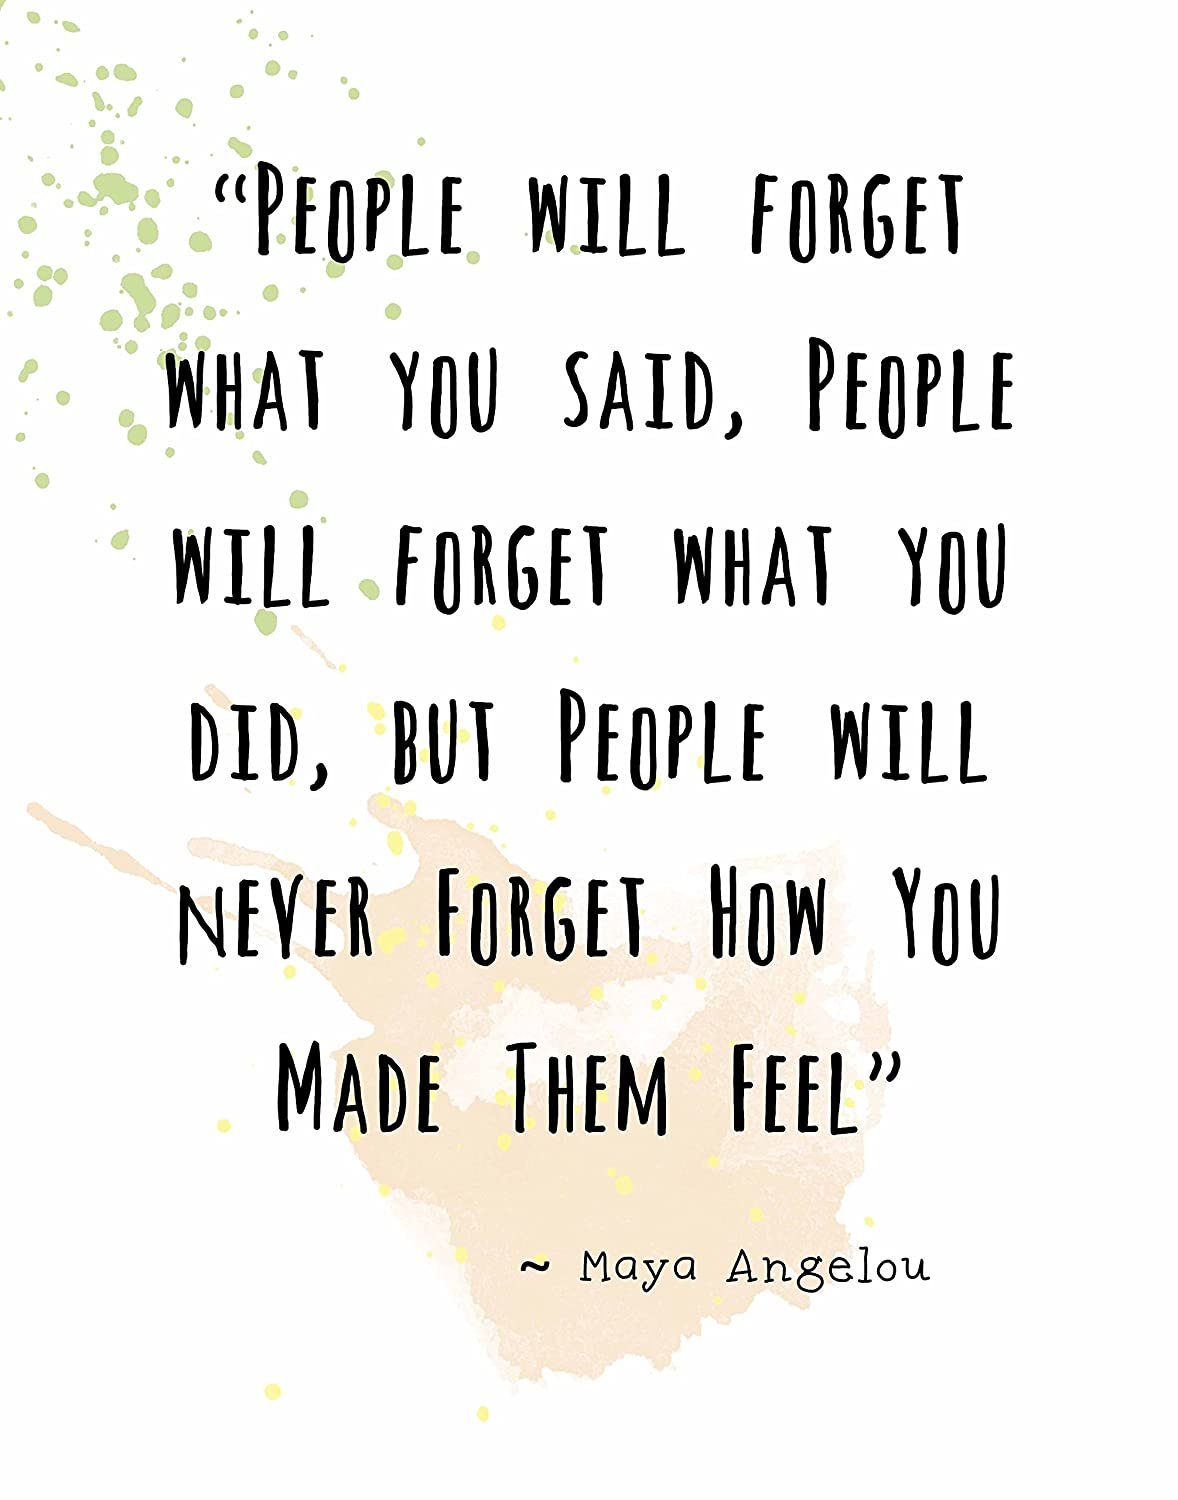 Amazon wall art print maya angelou famous quoteople amazon wall art print maya angelou famous quoteople will never forget how you made them feel 810 posters prints kristyandbryce Images